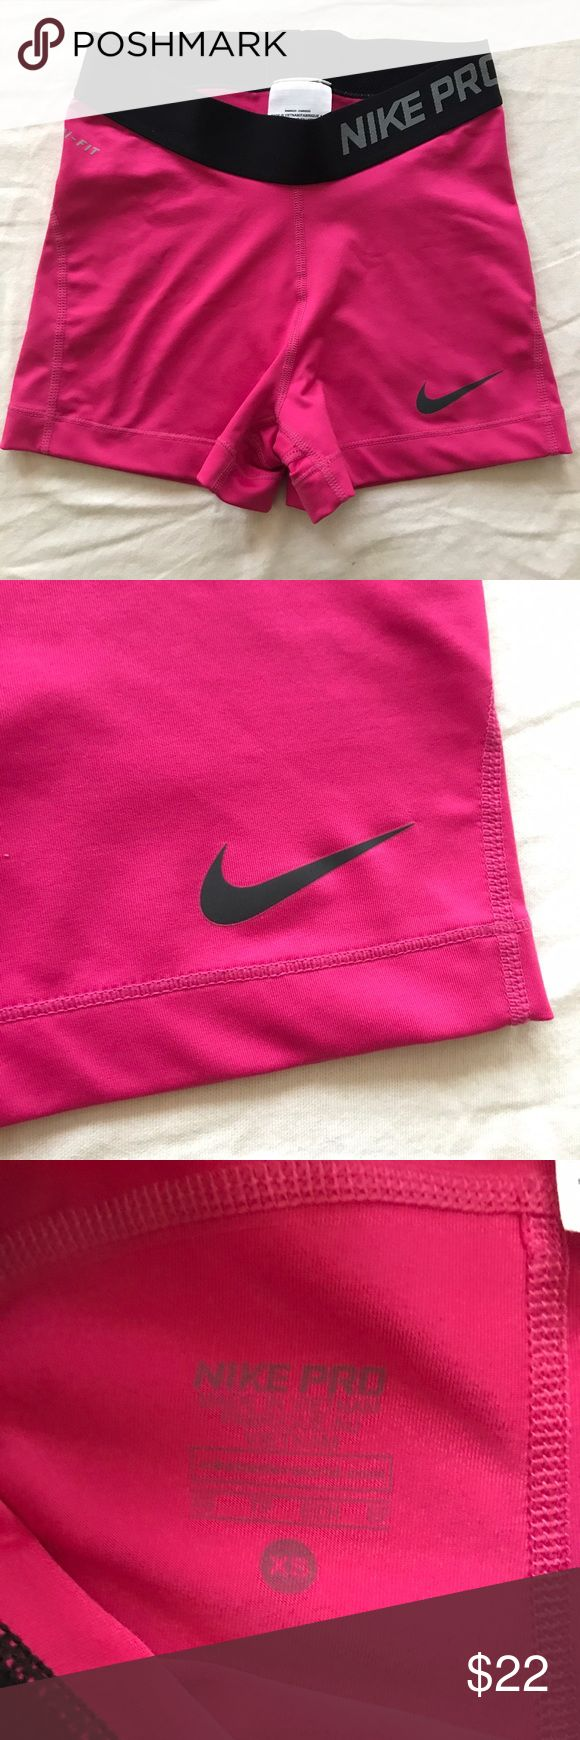 """NWOT Nike Pro 3"""" Compression Shorts  in Pink Nike Pro 3"""" Compression Shorts Spandex in Pink Nike Shorts"""